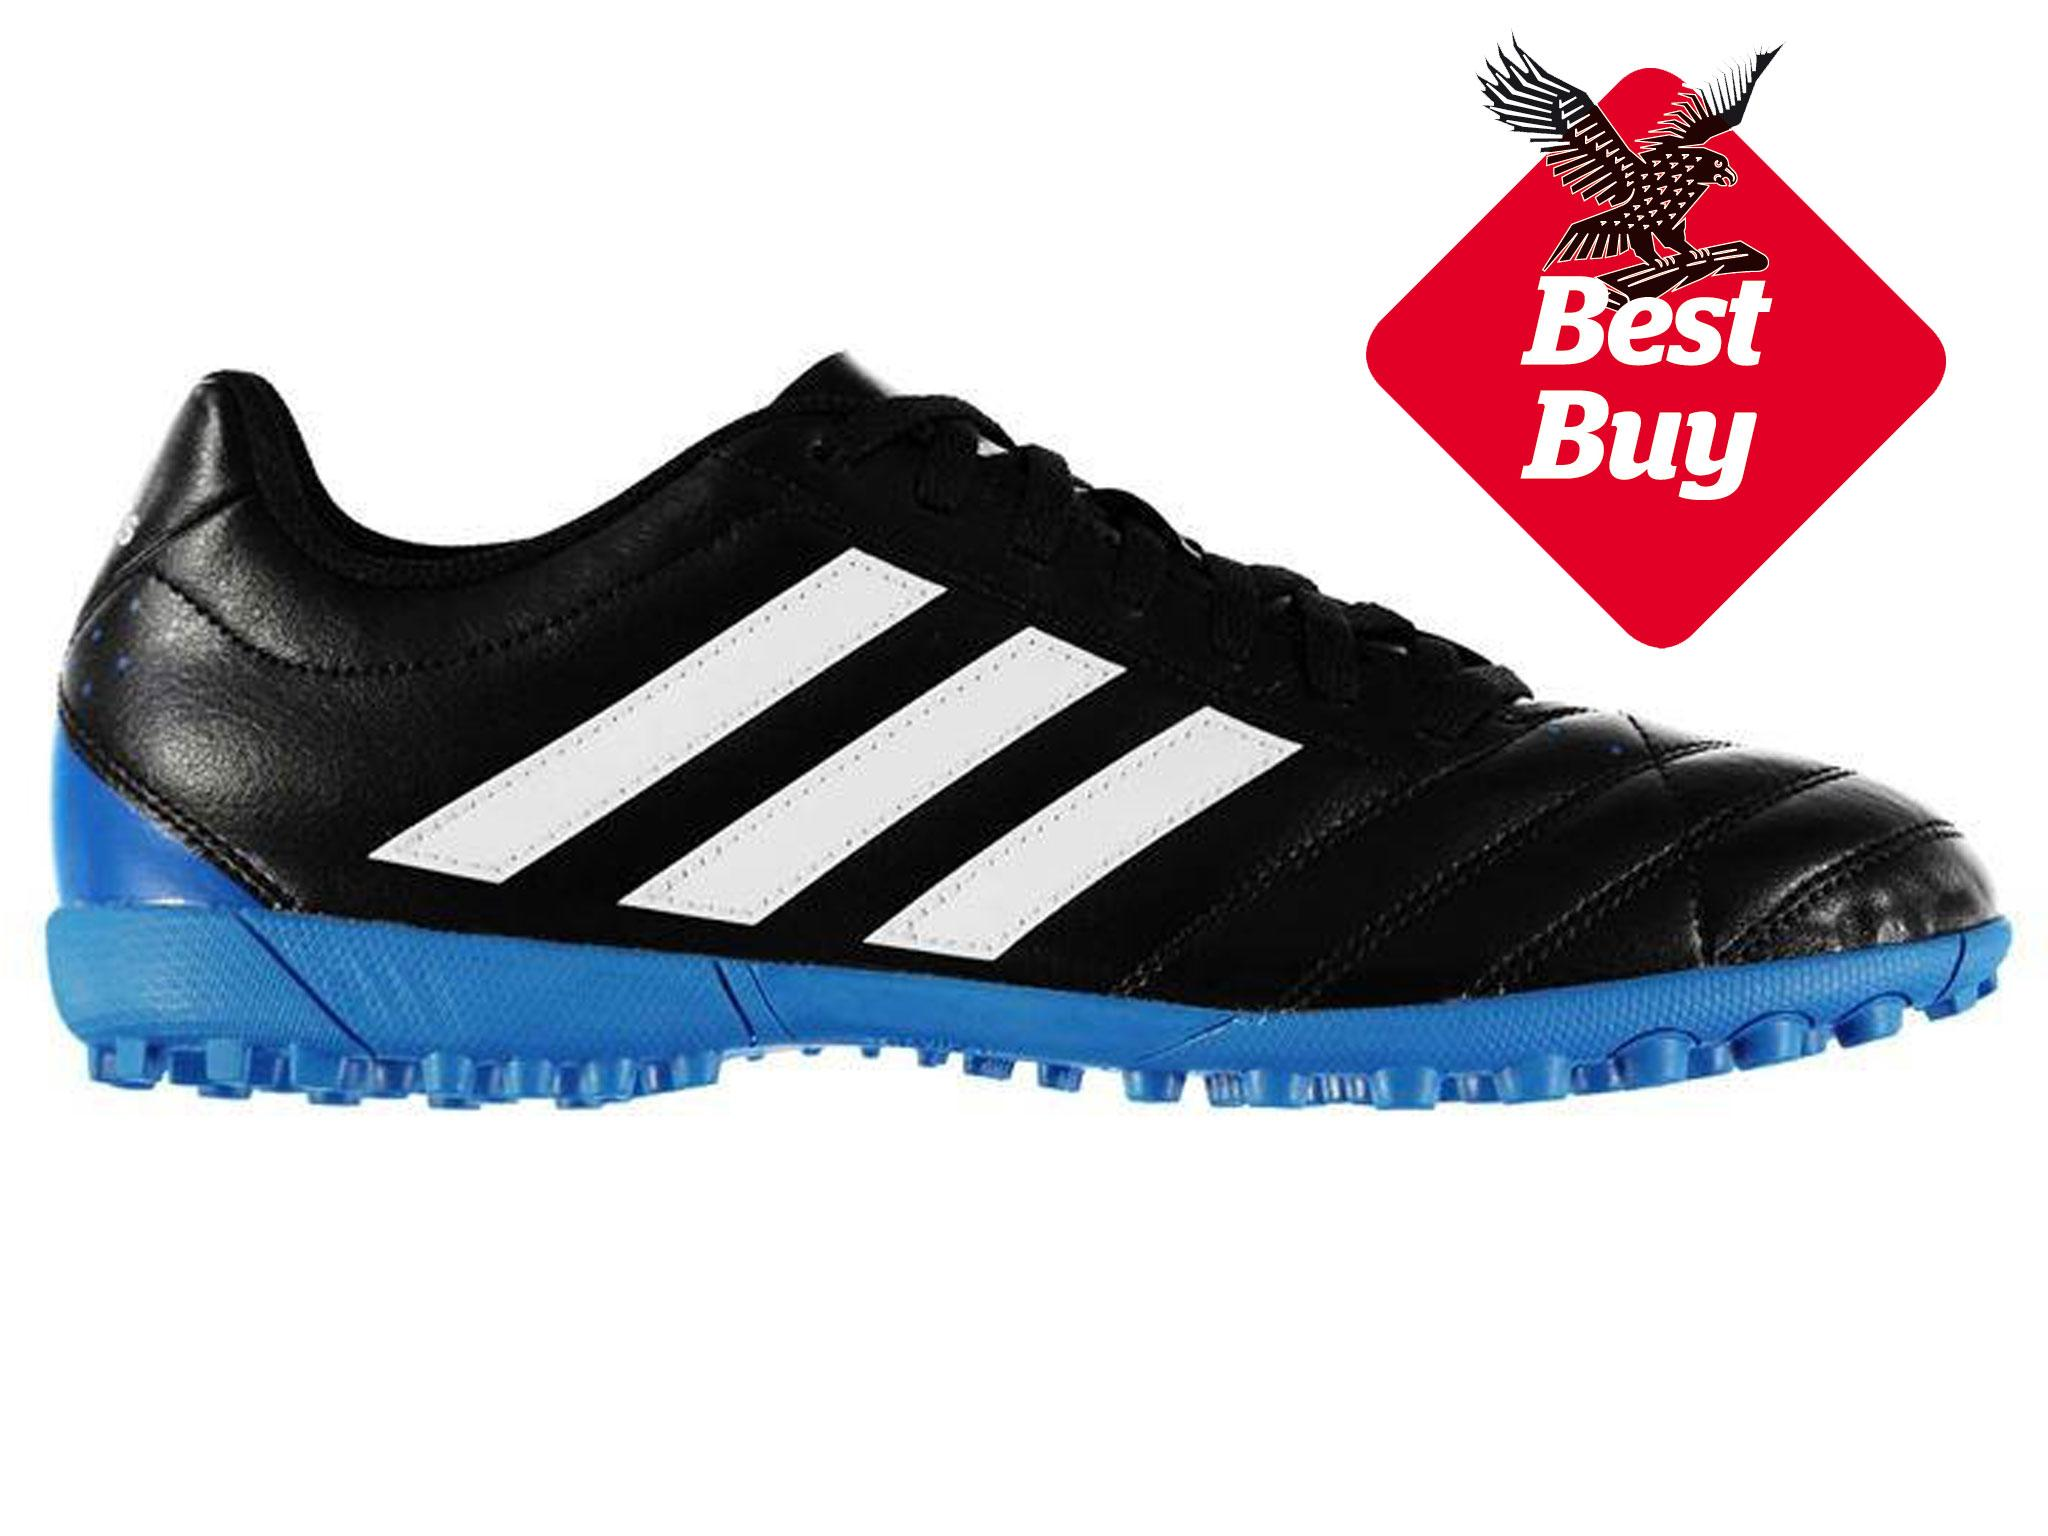 81a3b0f20803 Adidas Goletto Mens Astro Turf Trainers: £26, Sports Direct